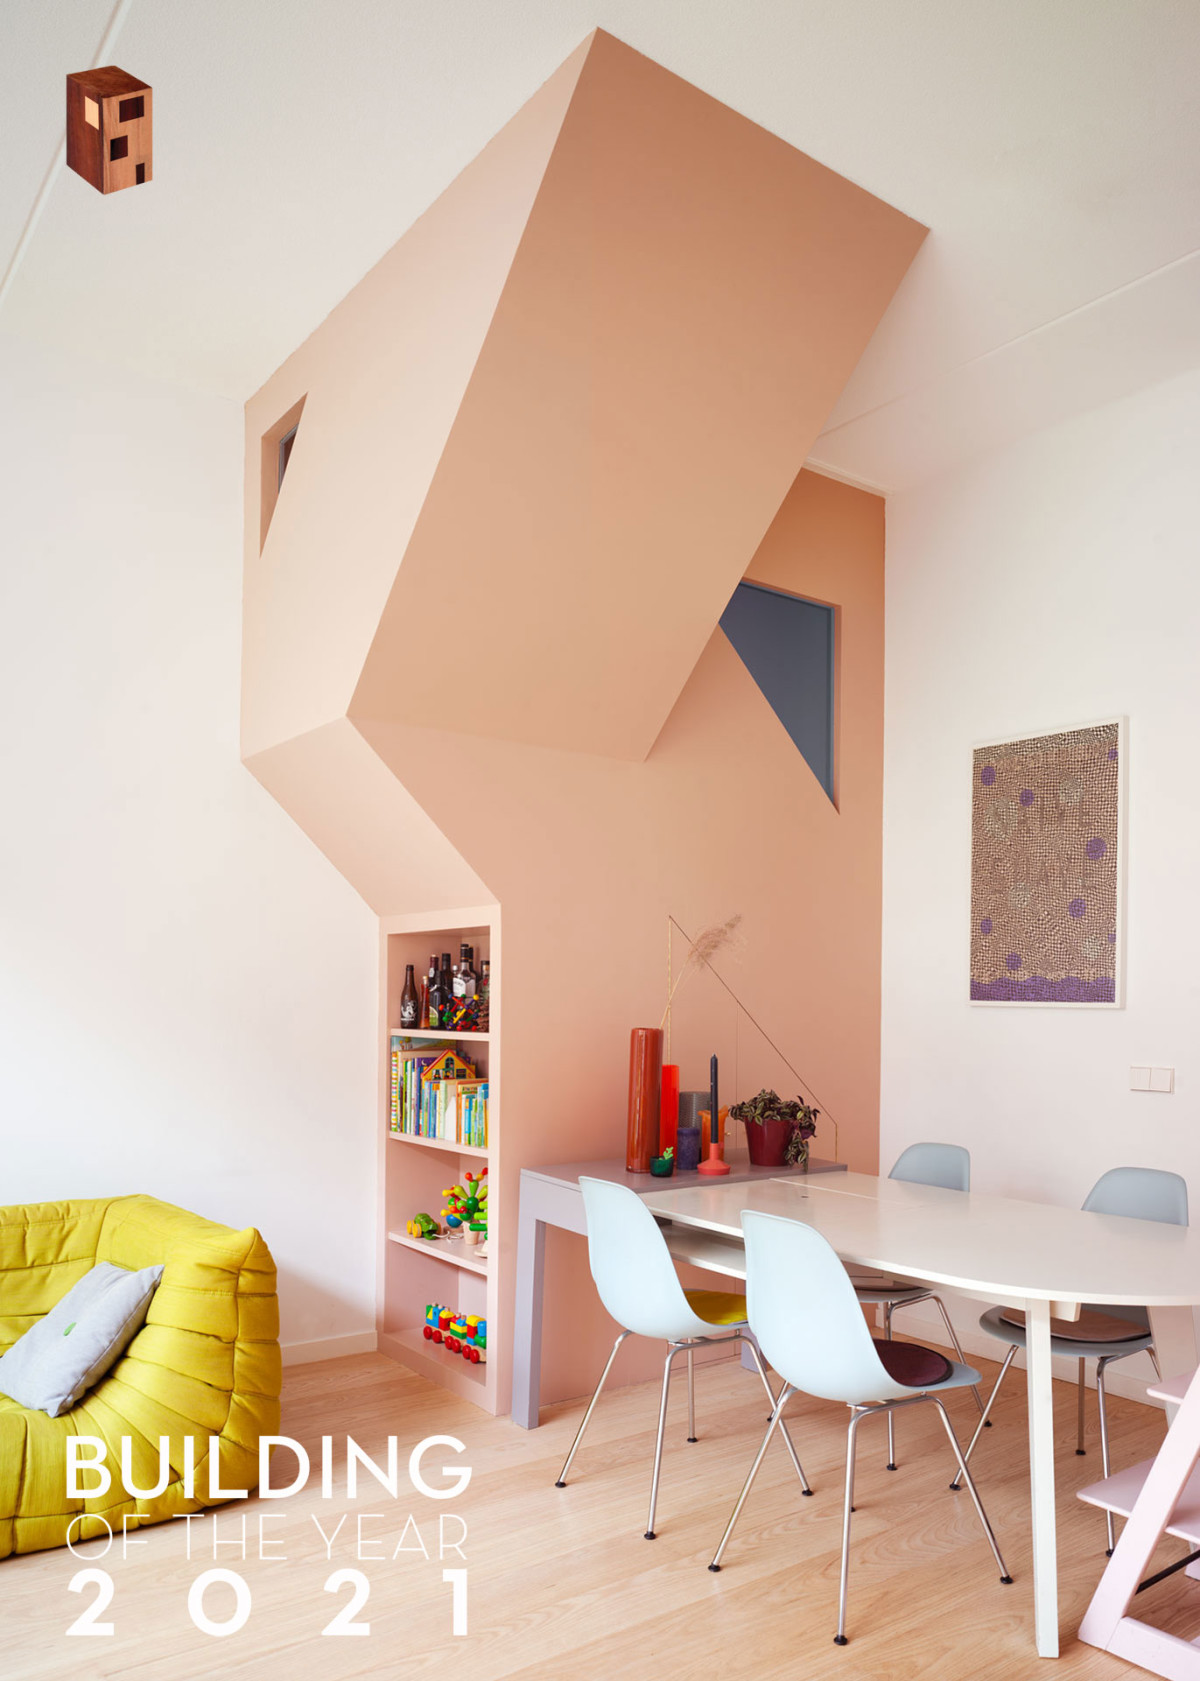 Building Of The Year nomination for Work Home Play Home by Archdaily!